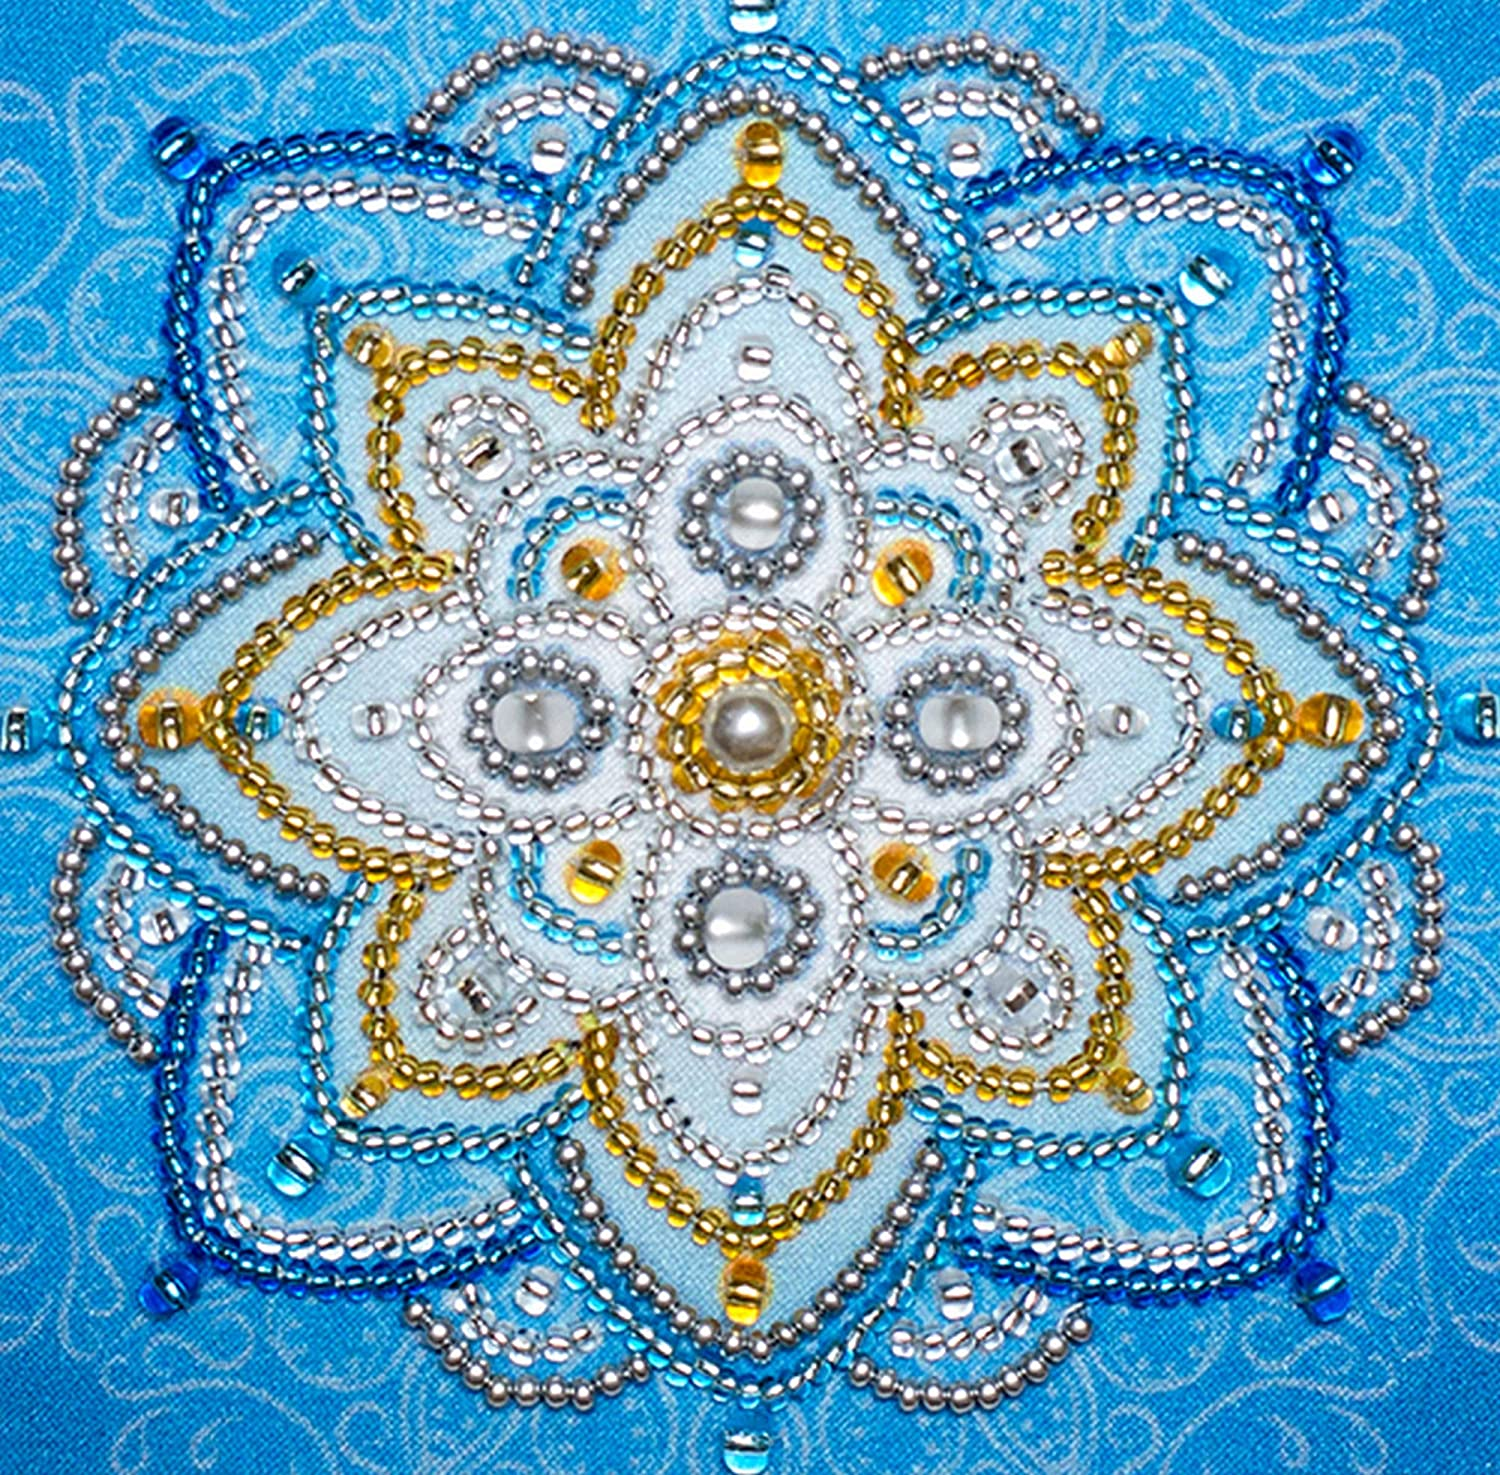 Mandala beads /& sequins Happiness VDV Bead Embroidery Kit